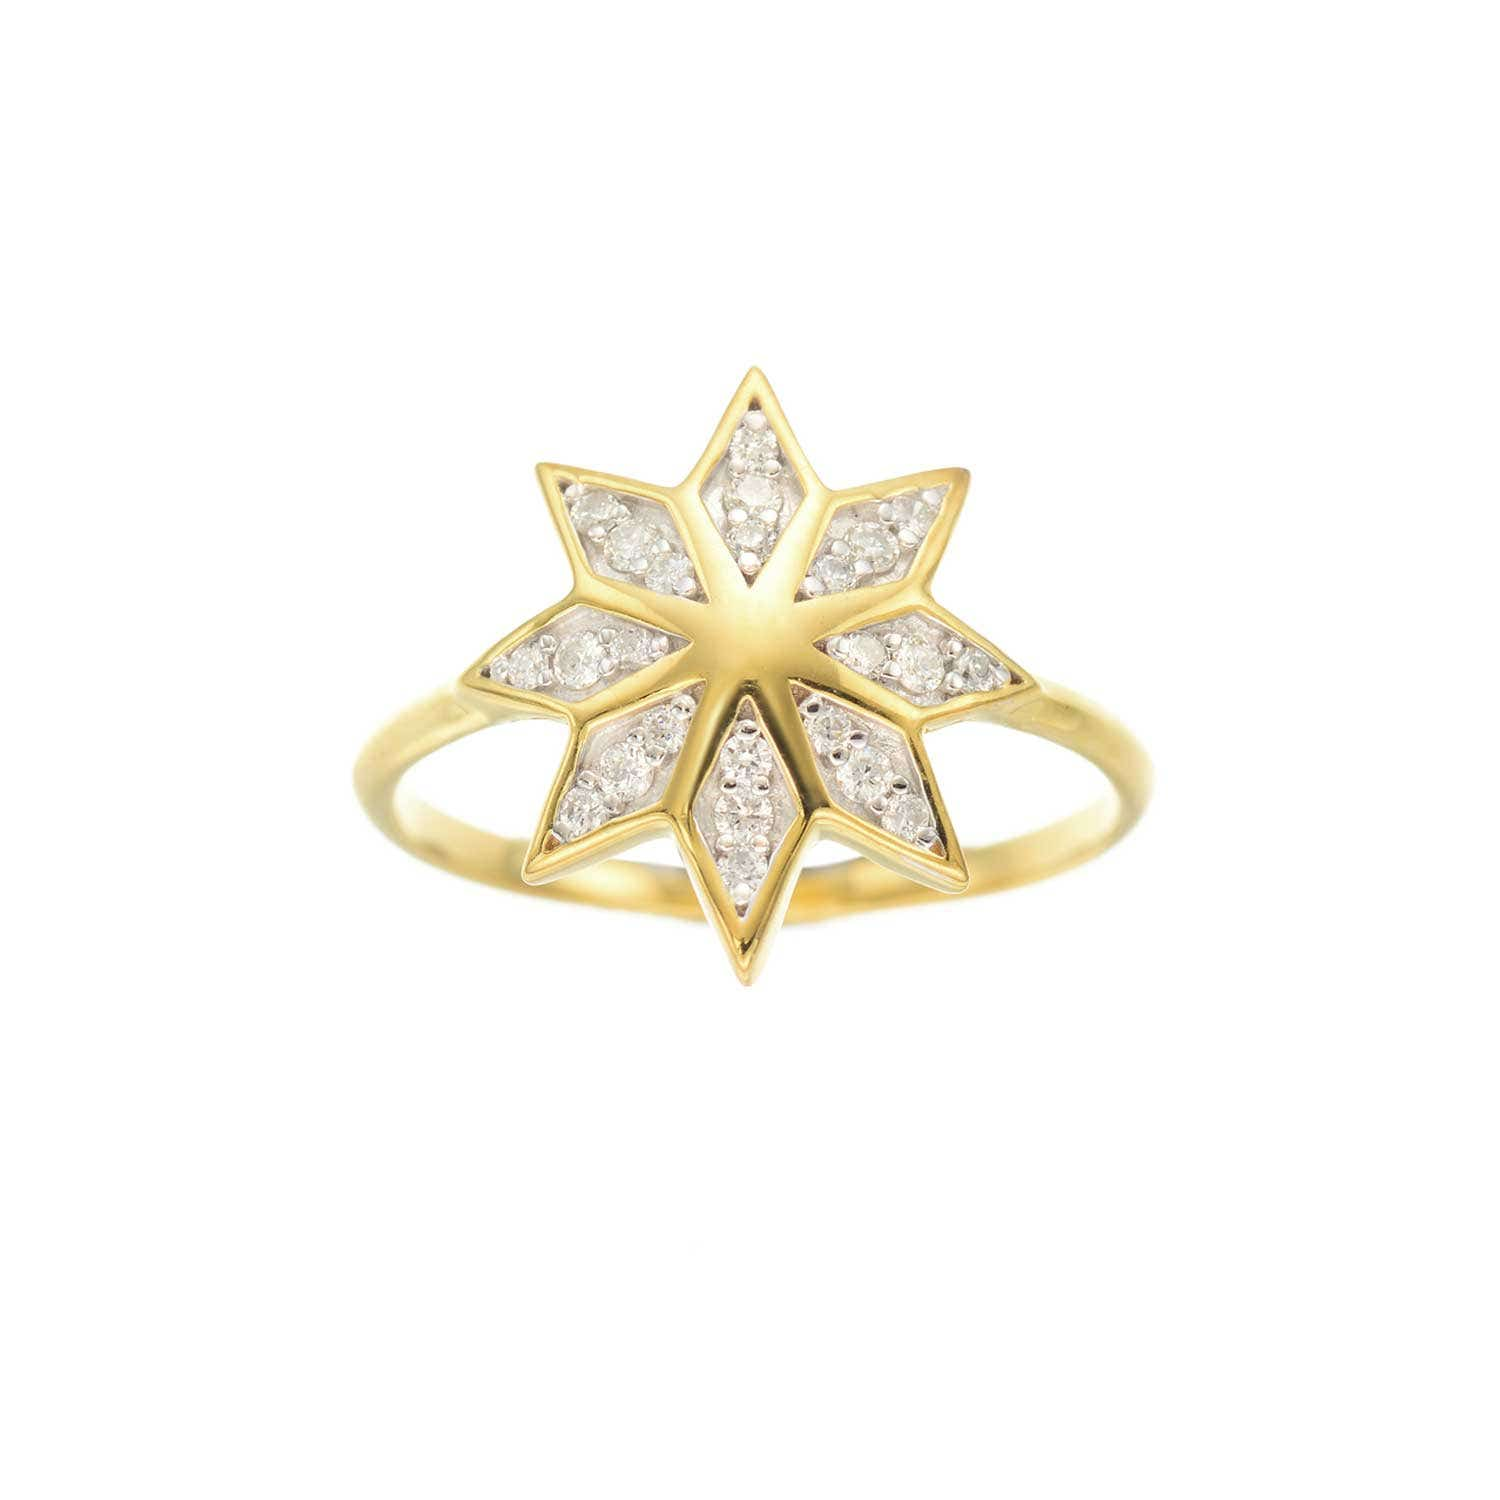 Lakshmi Ring. 9k Yellow Gold / Diamond